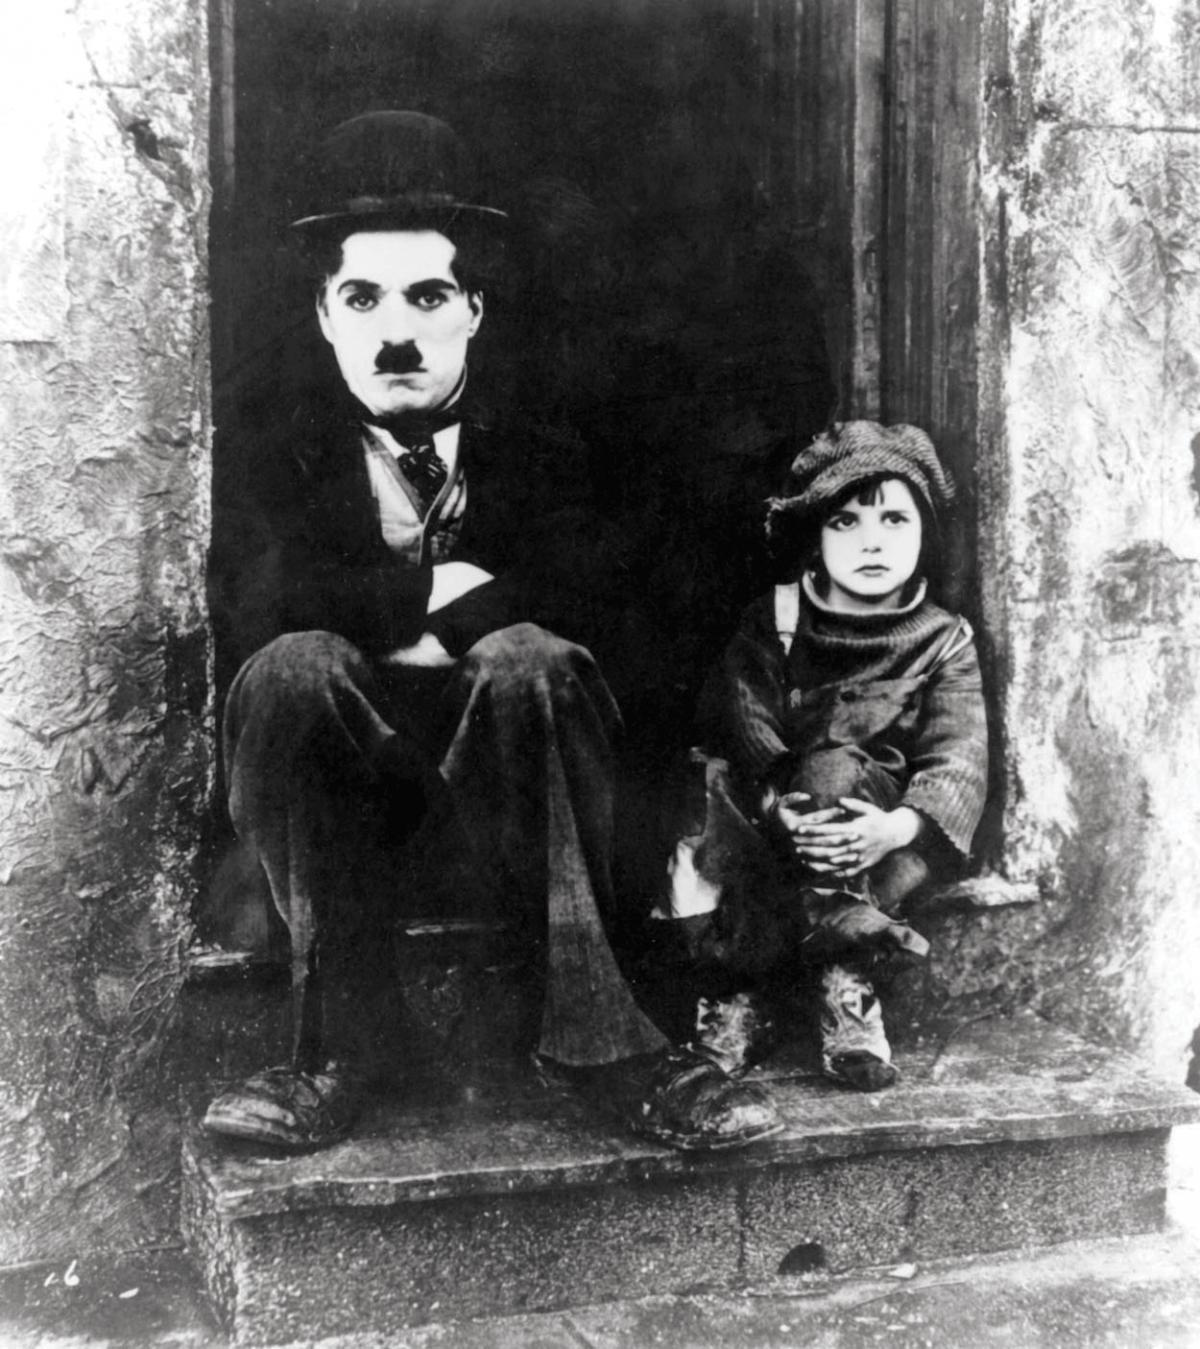 Black and white still of Charlie Chaplin and Jackie Coogan sitting on stoop